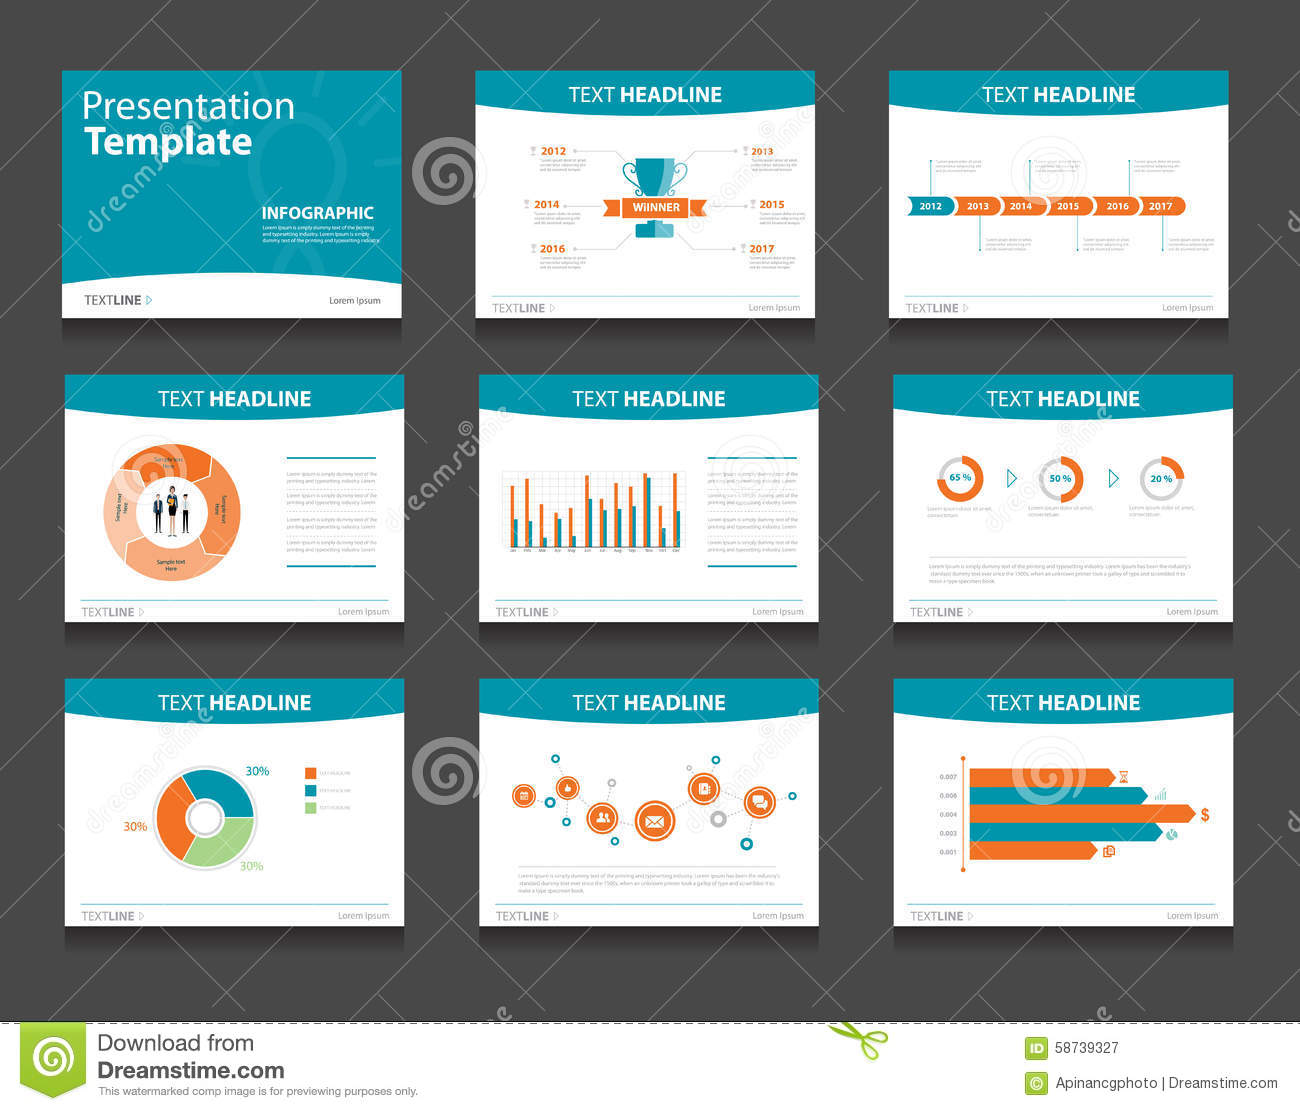 Powerpoint business presentation templates boatremyeaton powerpoint business presentation templates flashek Choice Image